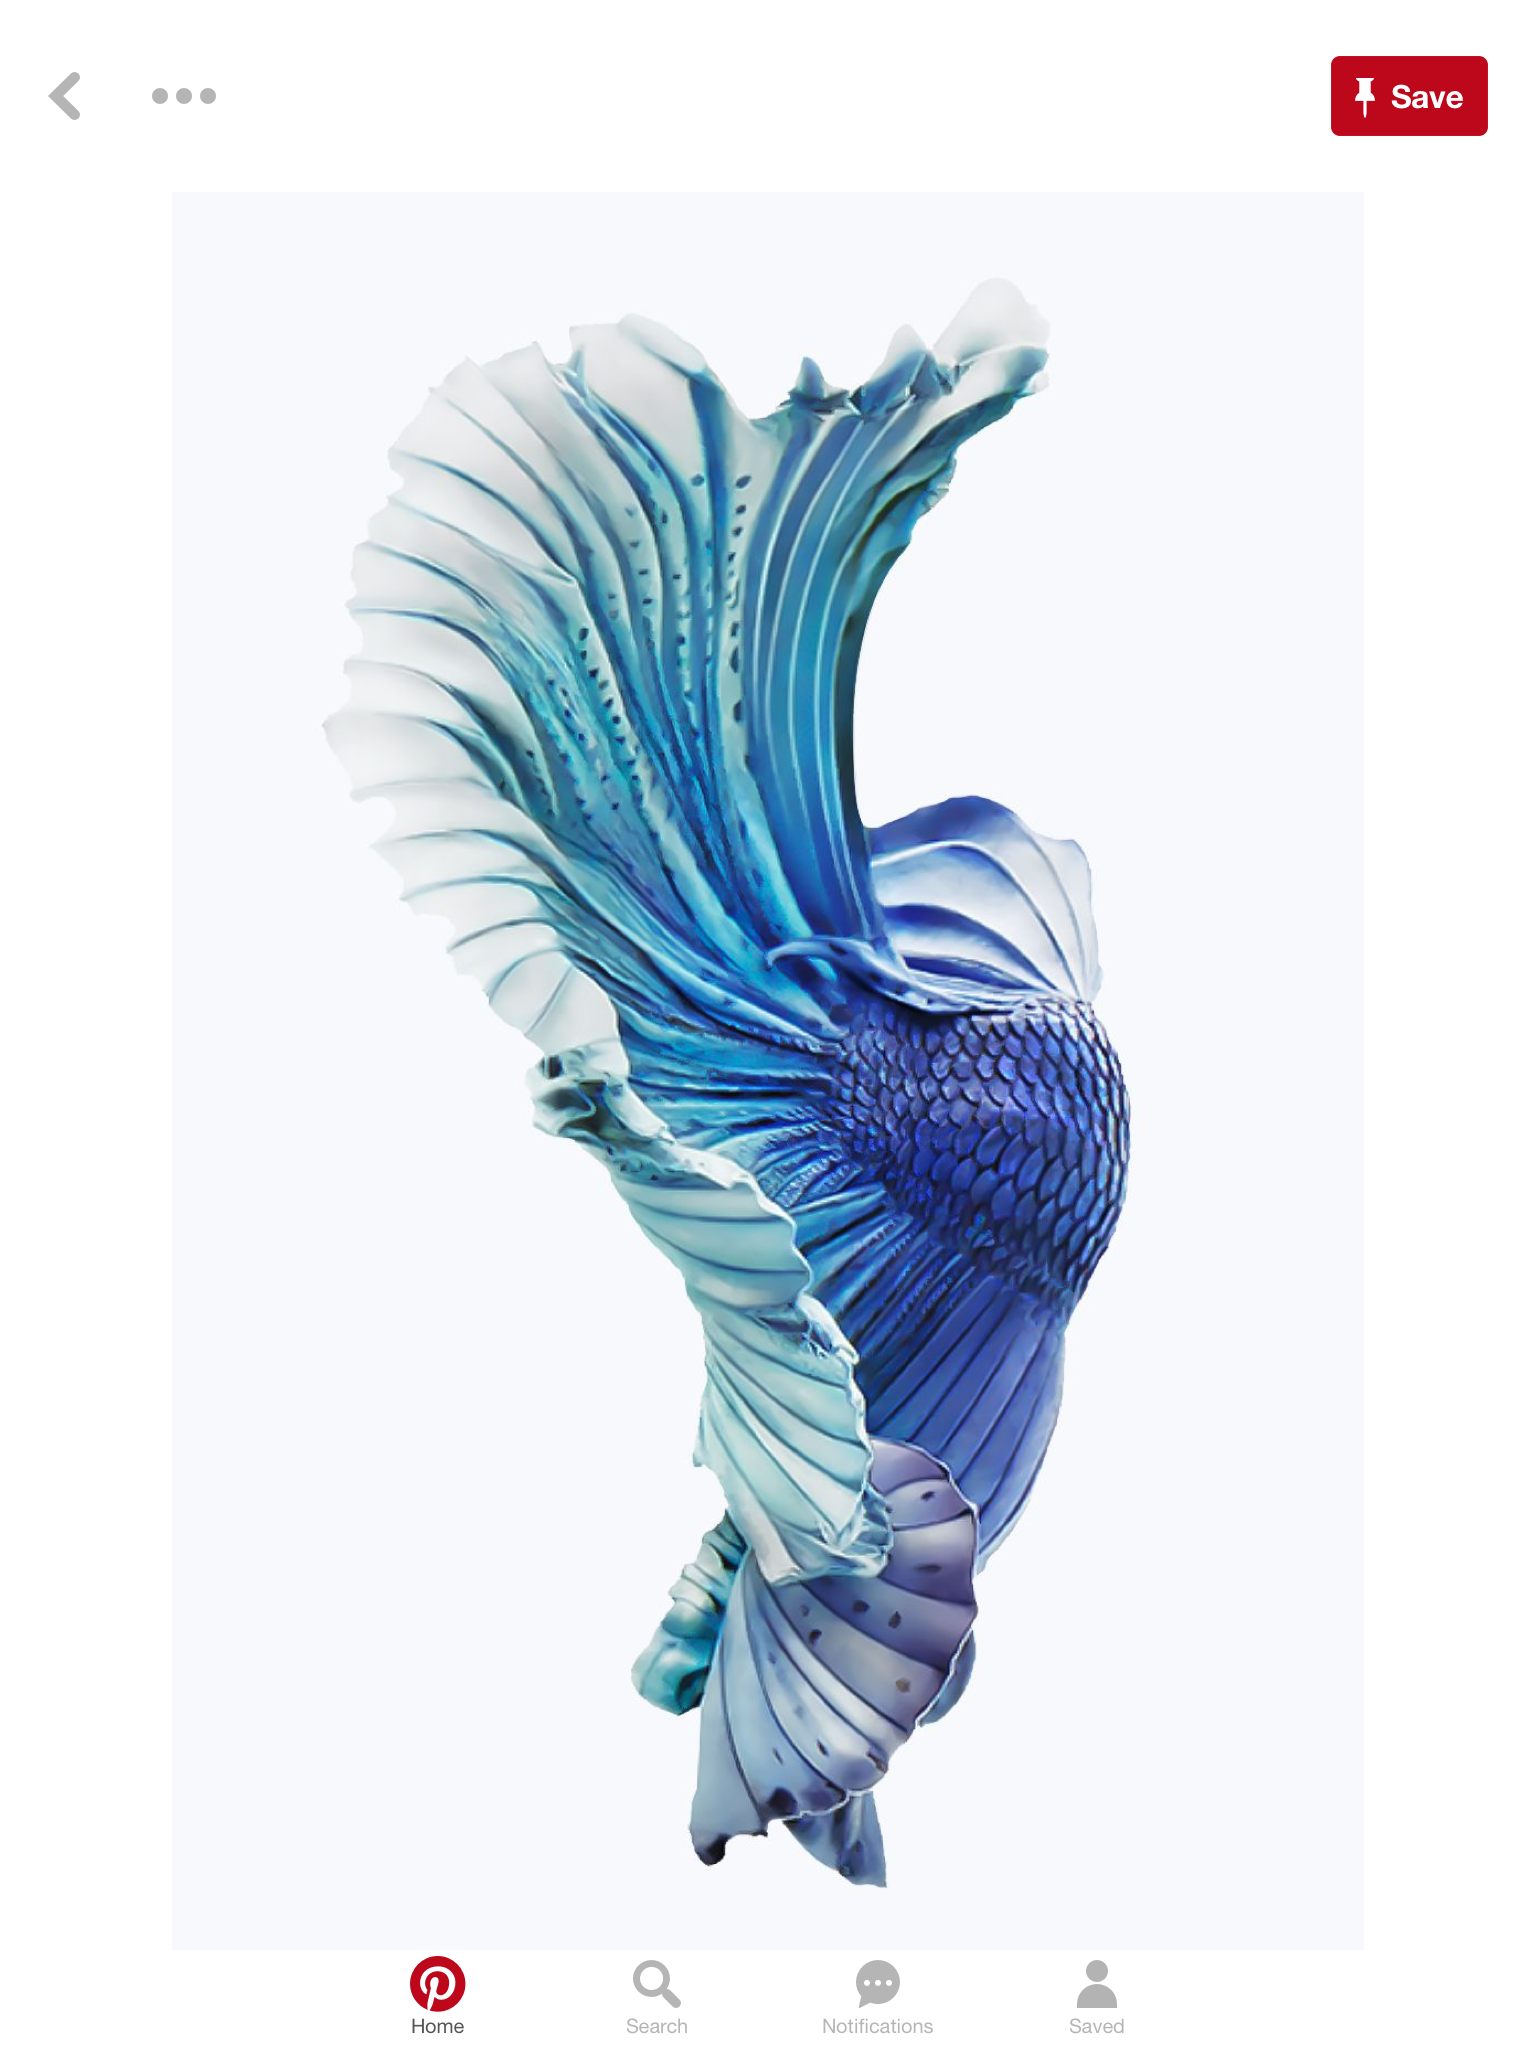 Fish wallpaper iphone image by Caroline Wildermuth on